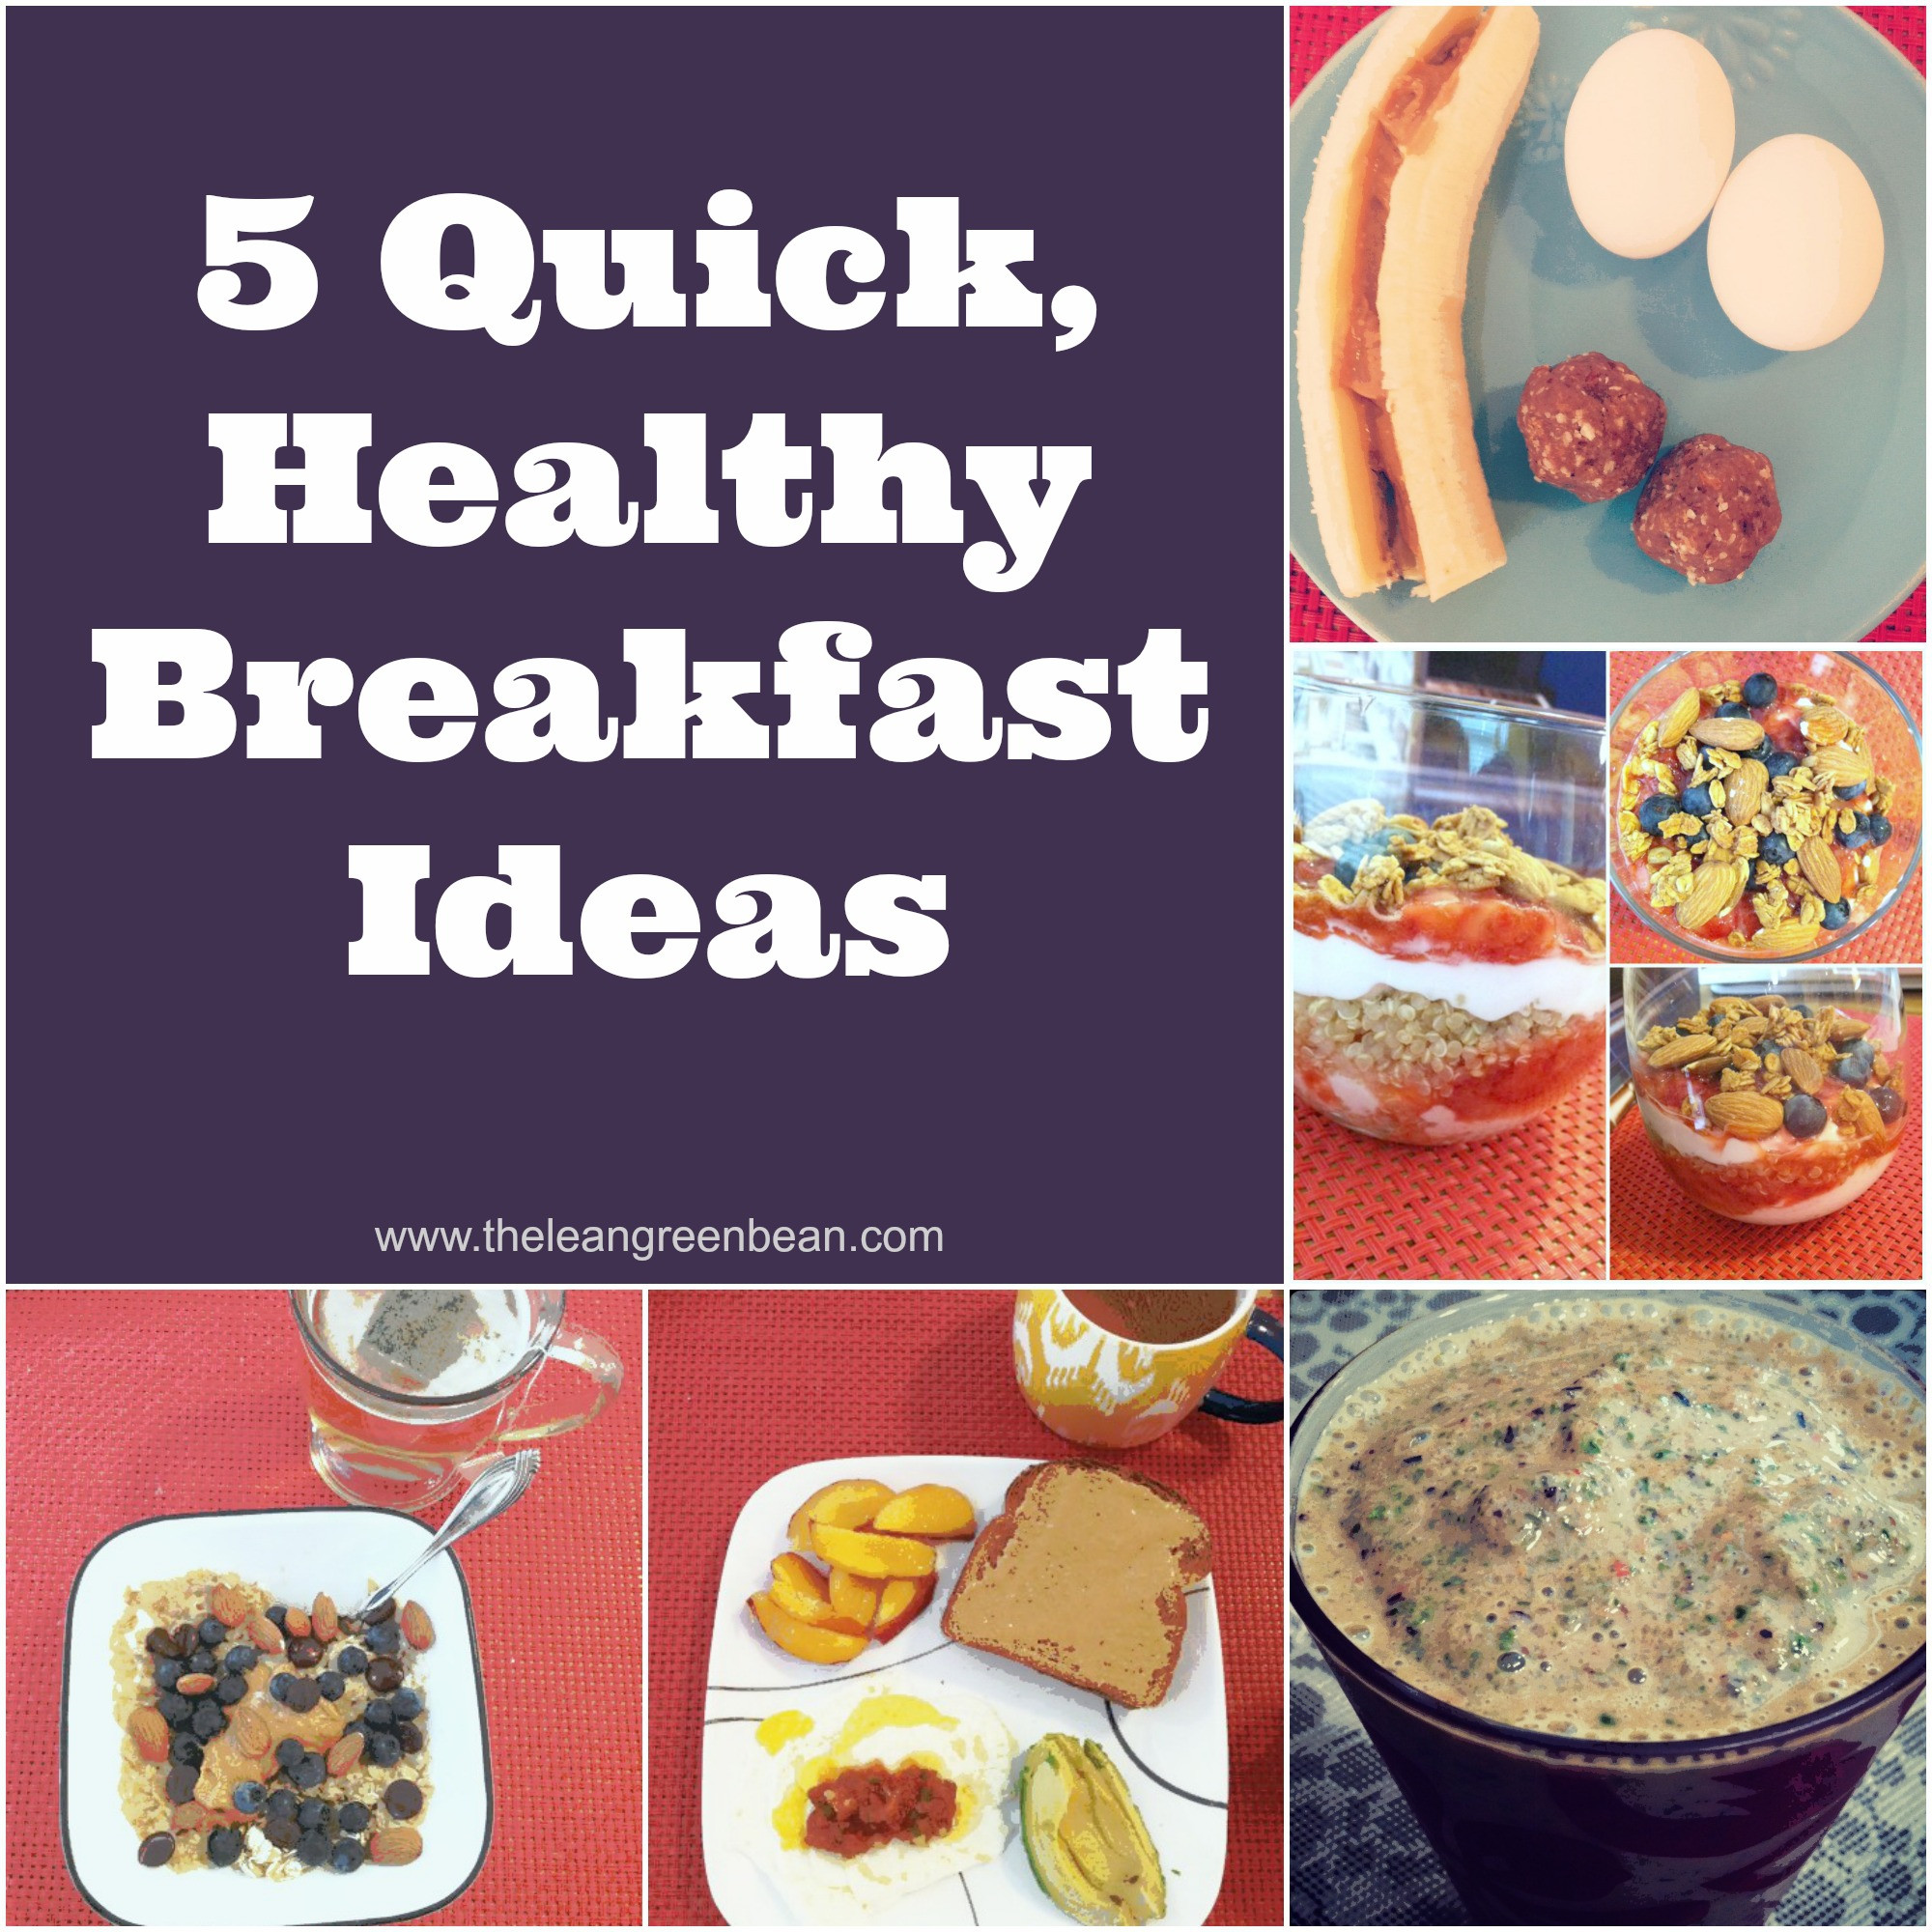 Healthy And Quick Breakfast  5 Quick Healthy Breakfast Ideas from a Registered Dietitian